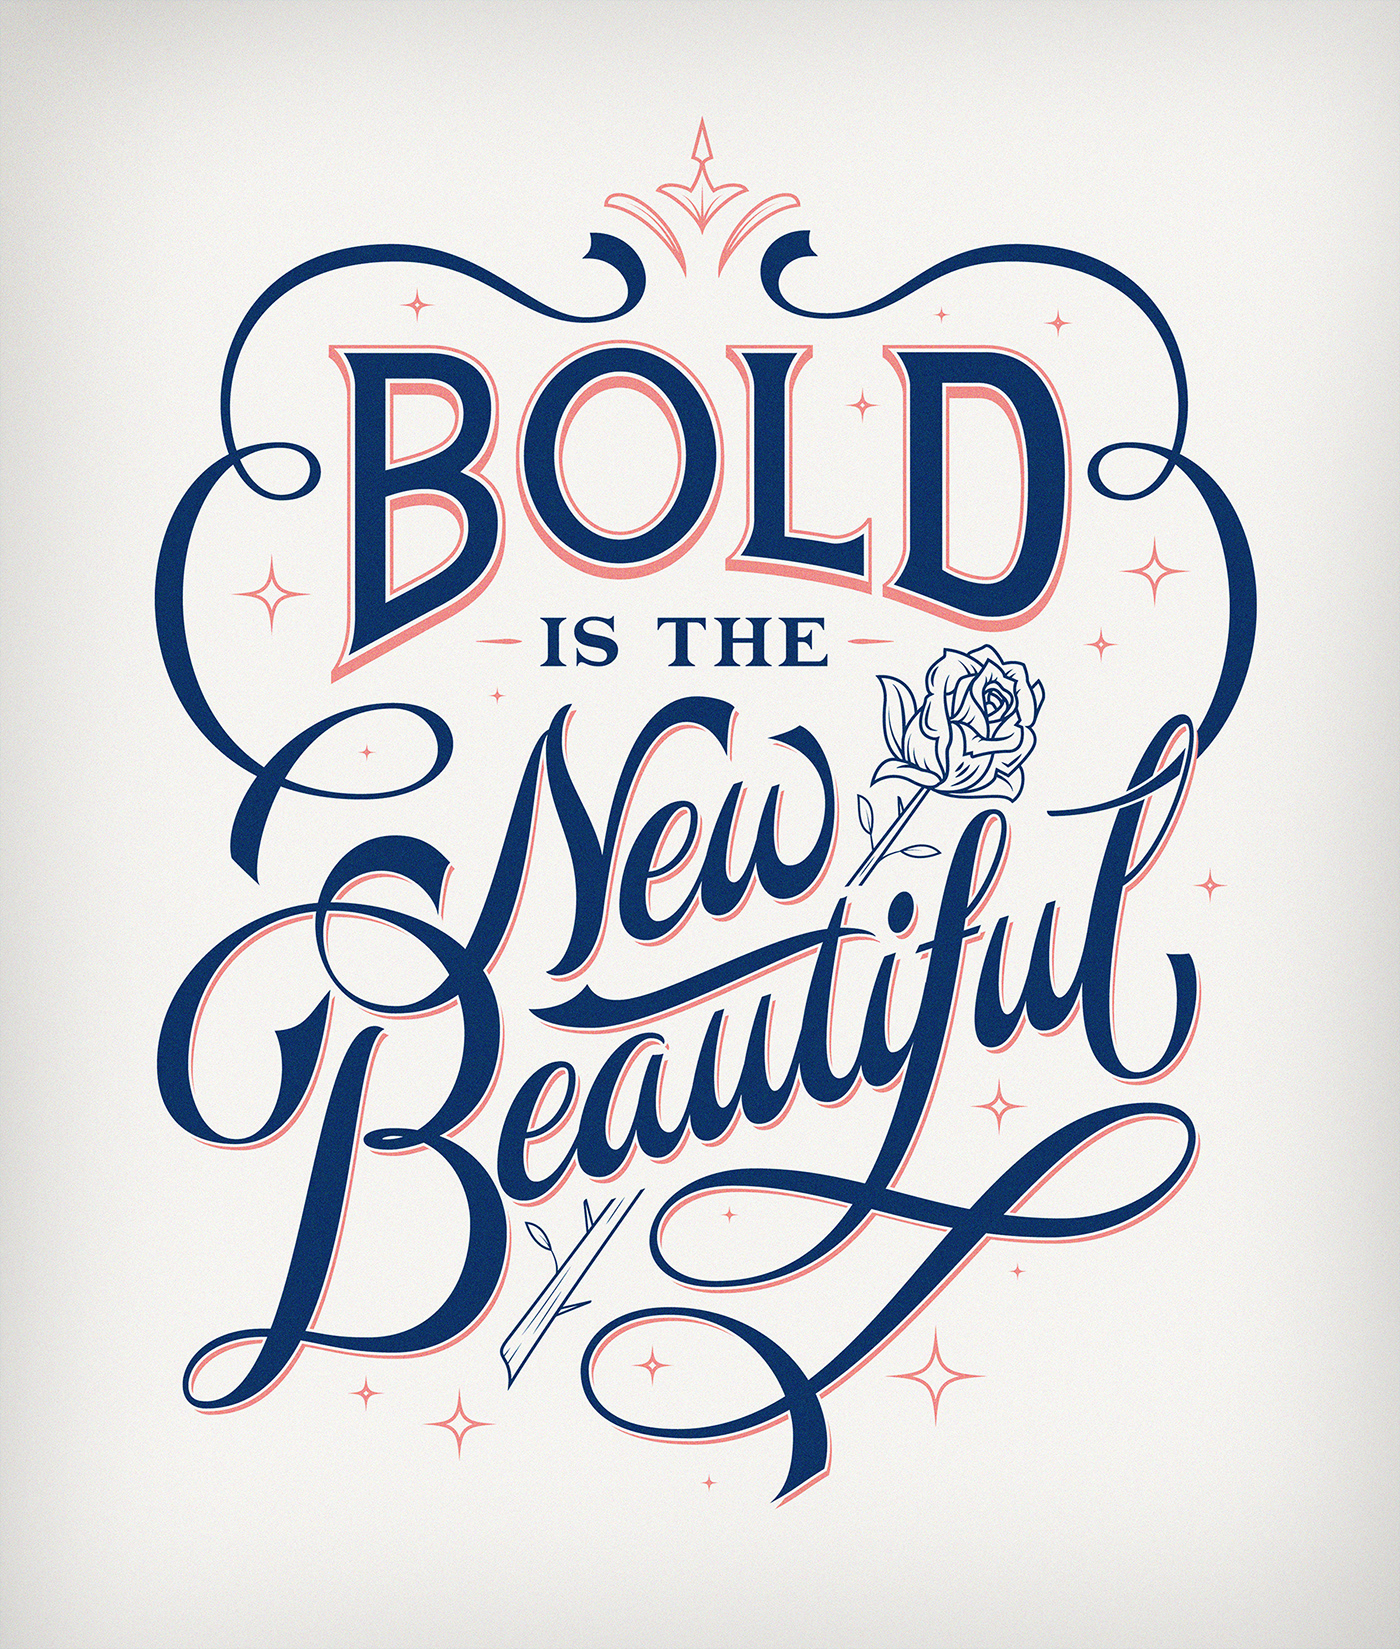 Hand Lettering Works by Tobias Saul